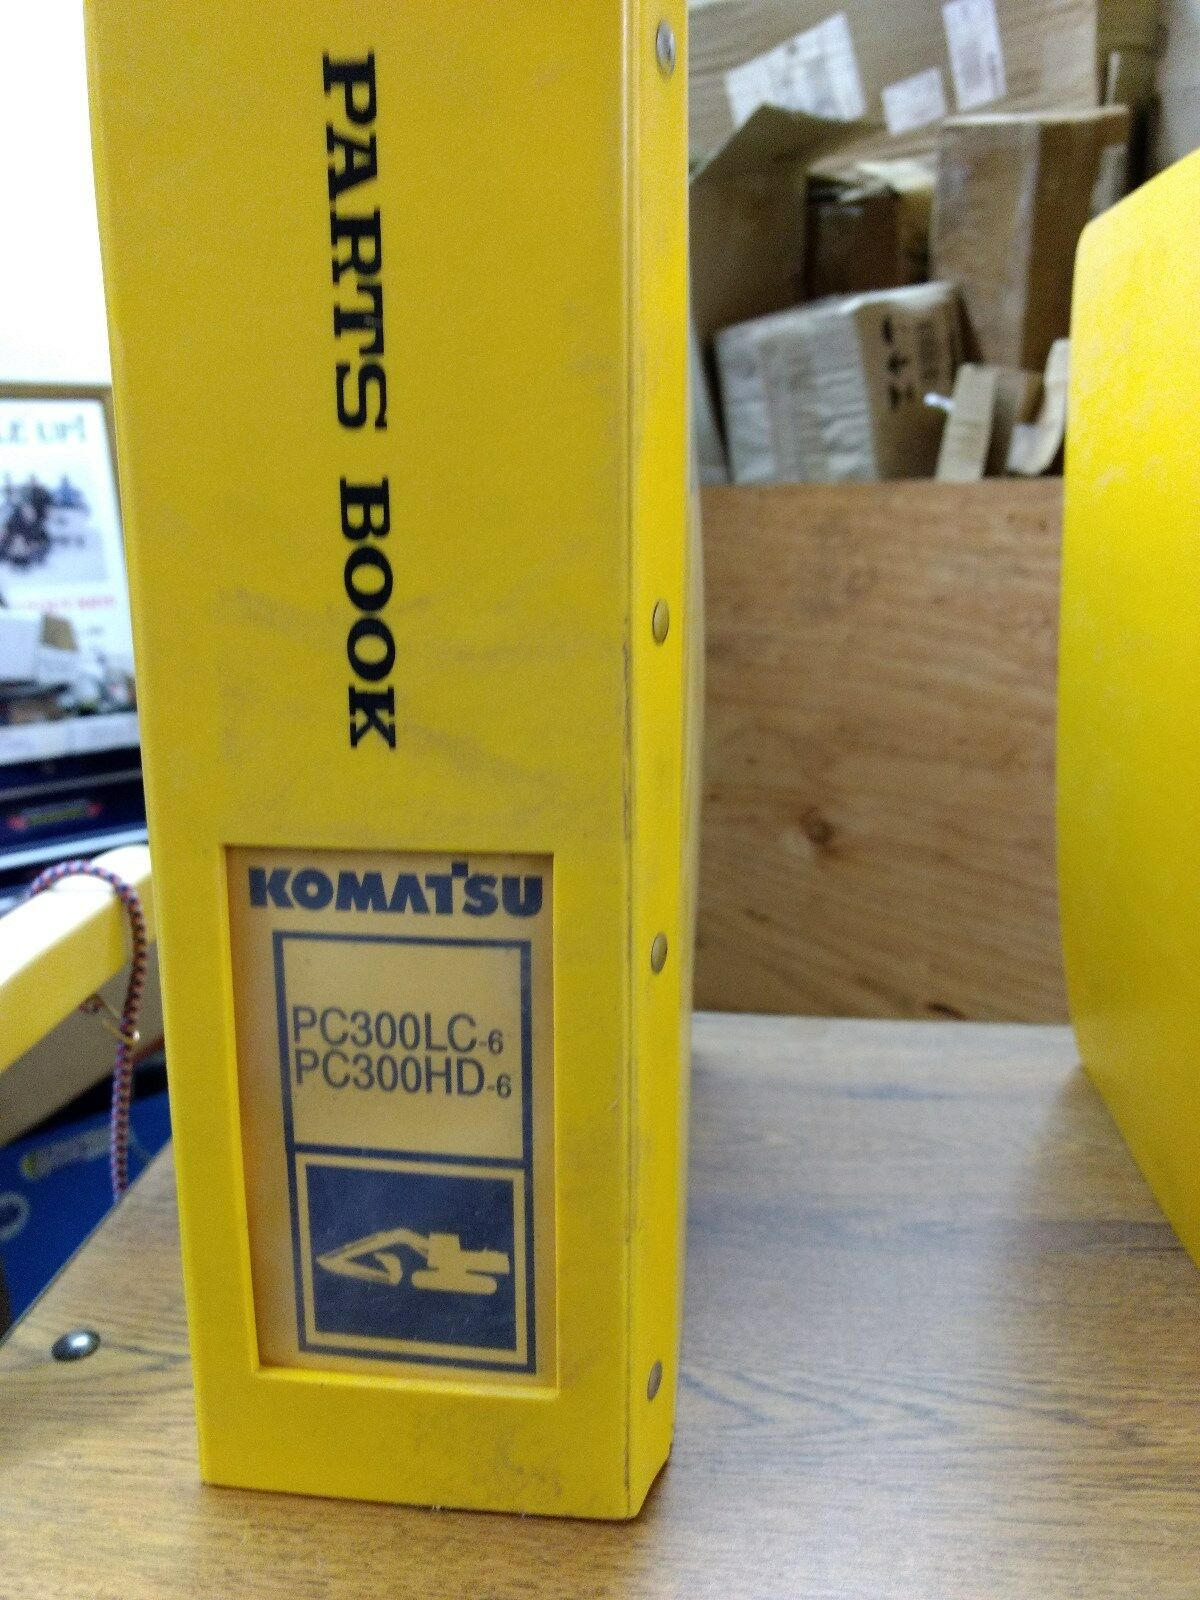 Komatsu PC300LC PC300HD-6L OPERATION MAINTENANCE PARTS MANUAL CUMMINS MANUAL  1 of 1Only 1 available See More